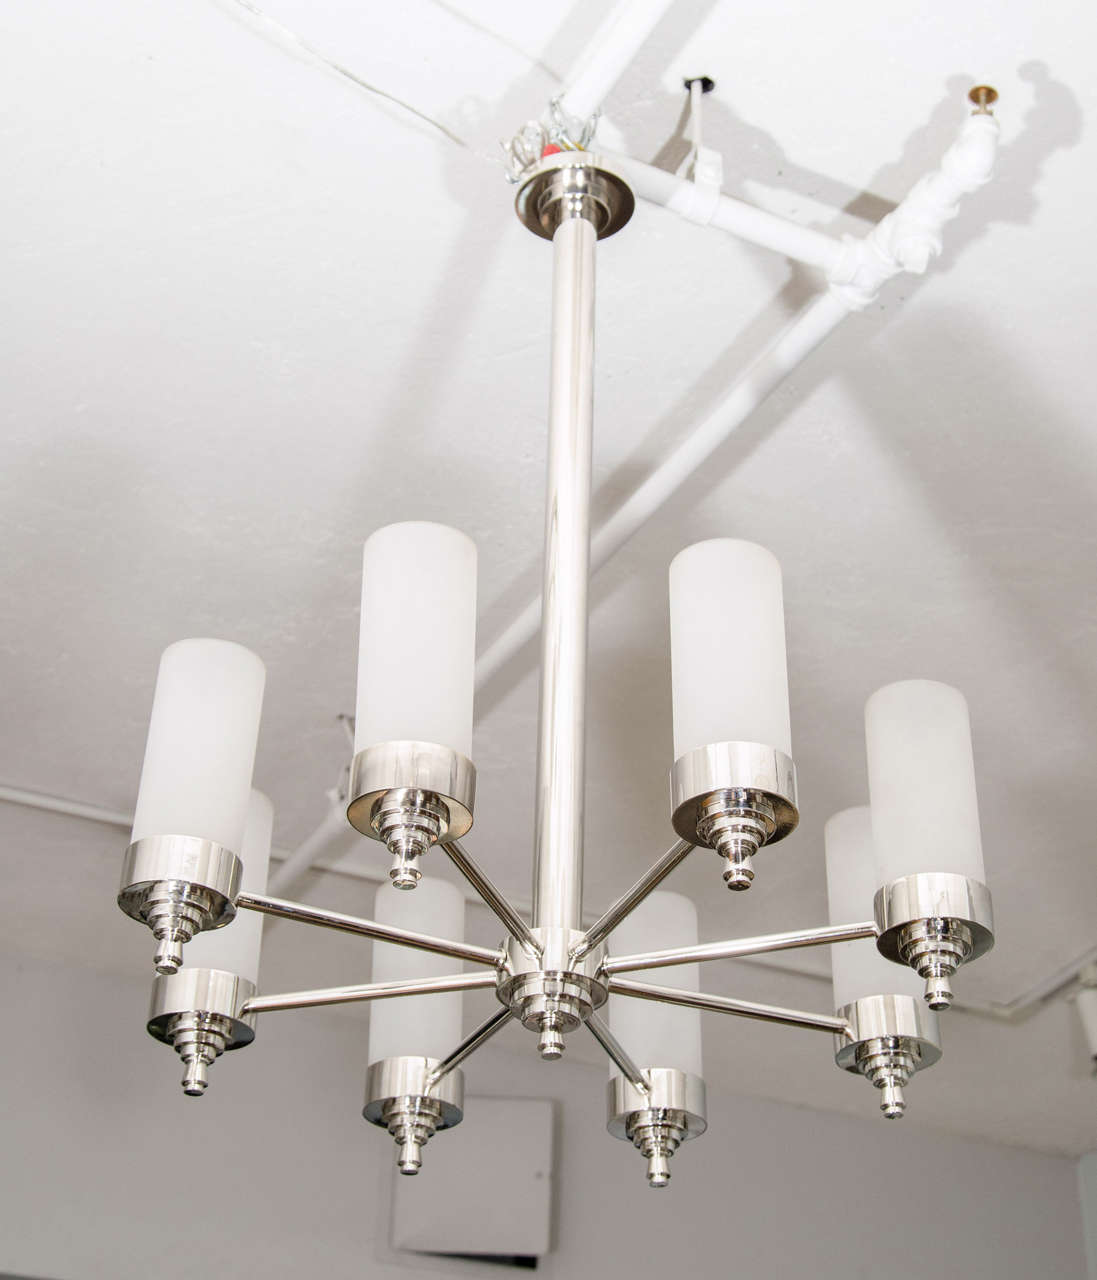 Elegantly detailed French chandelier designed by Jacques Adnet for Petitot, nickel plated with original frosted glass shades.